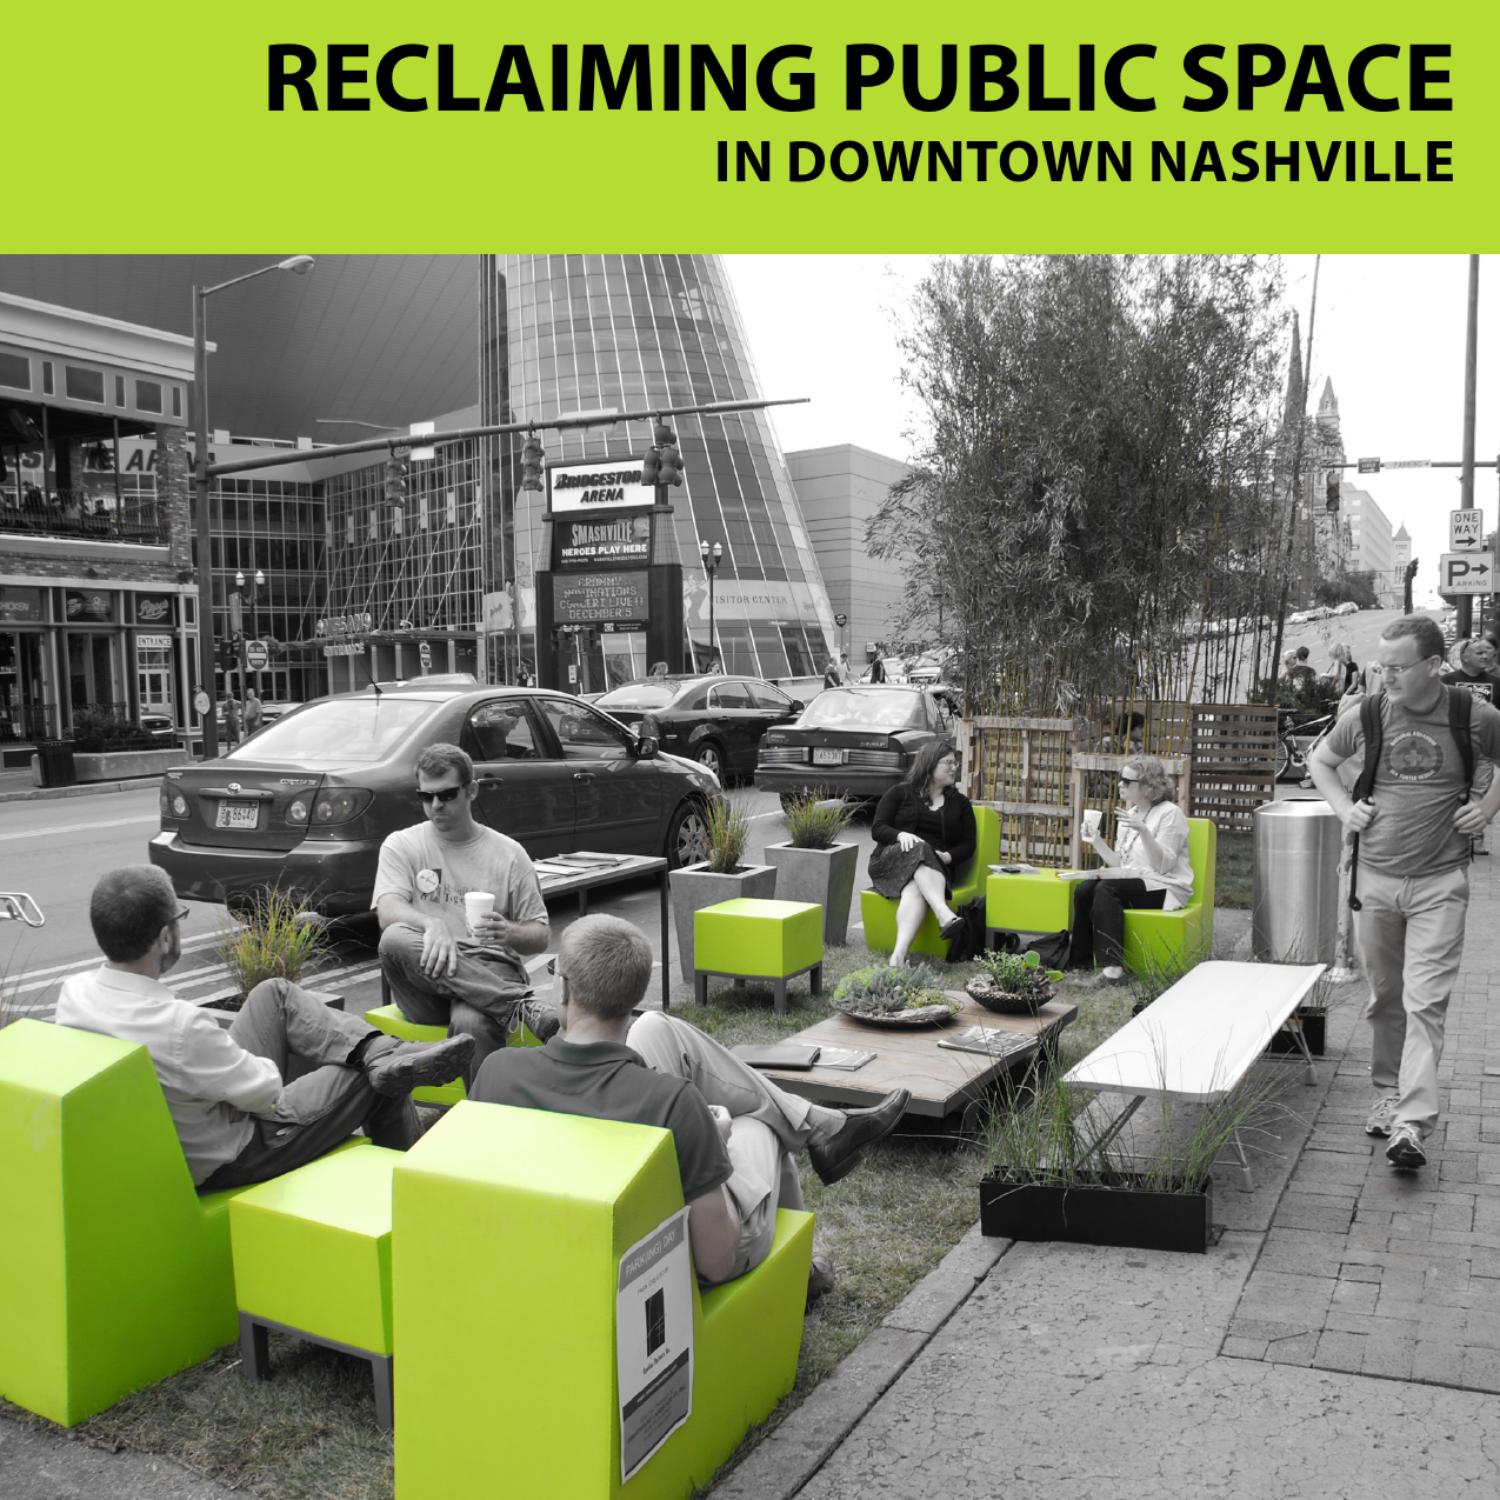 Reclaiming Public Space in Downtown Nashville by Nashville Civic Design Center - issuu